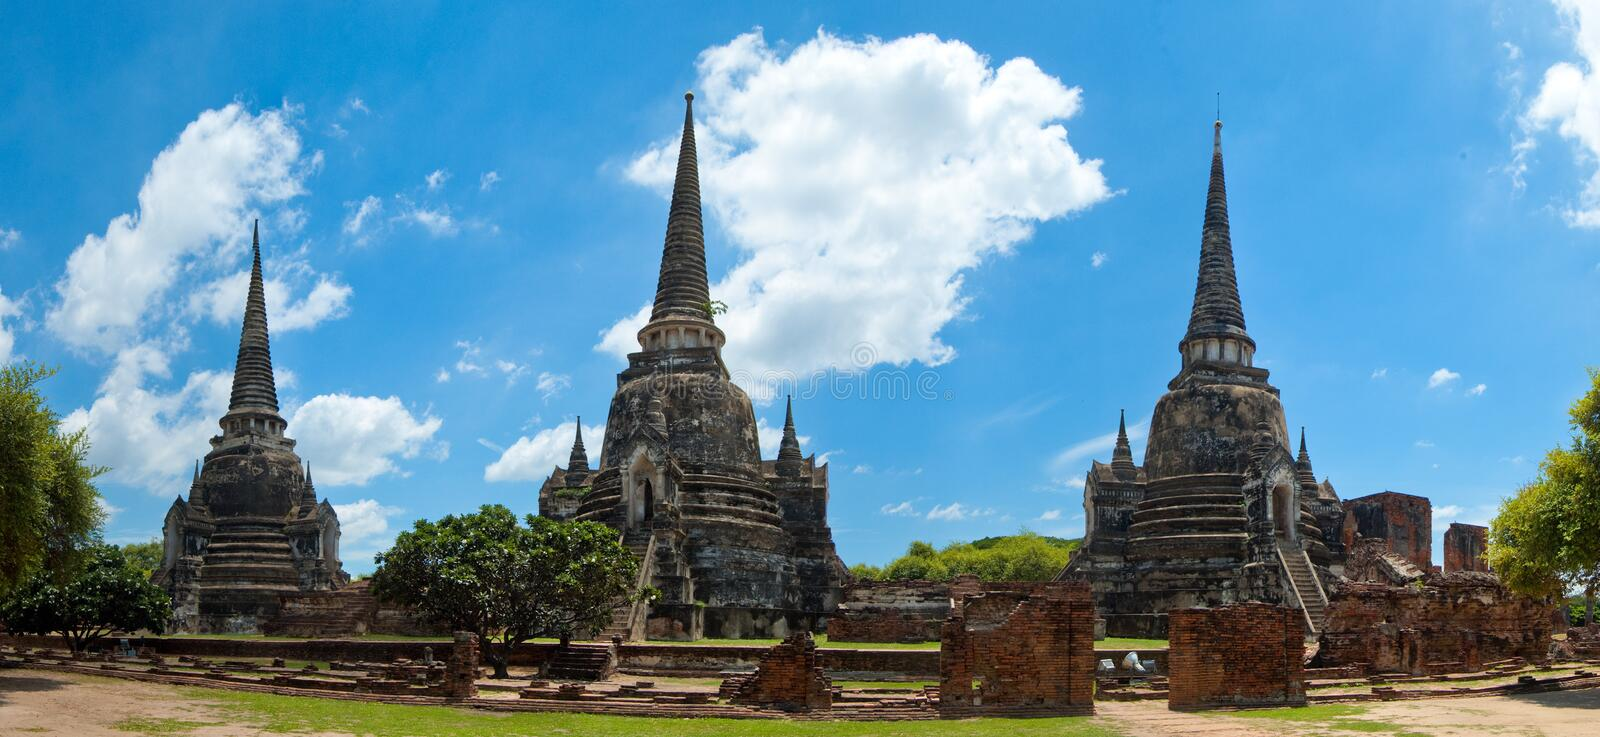 Drie Torens, Ayutthaya royalty-vrije stock afbeelding